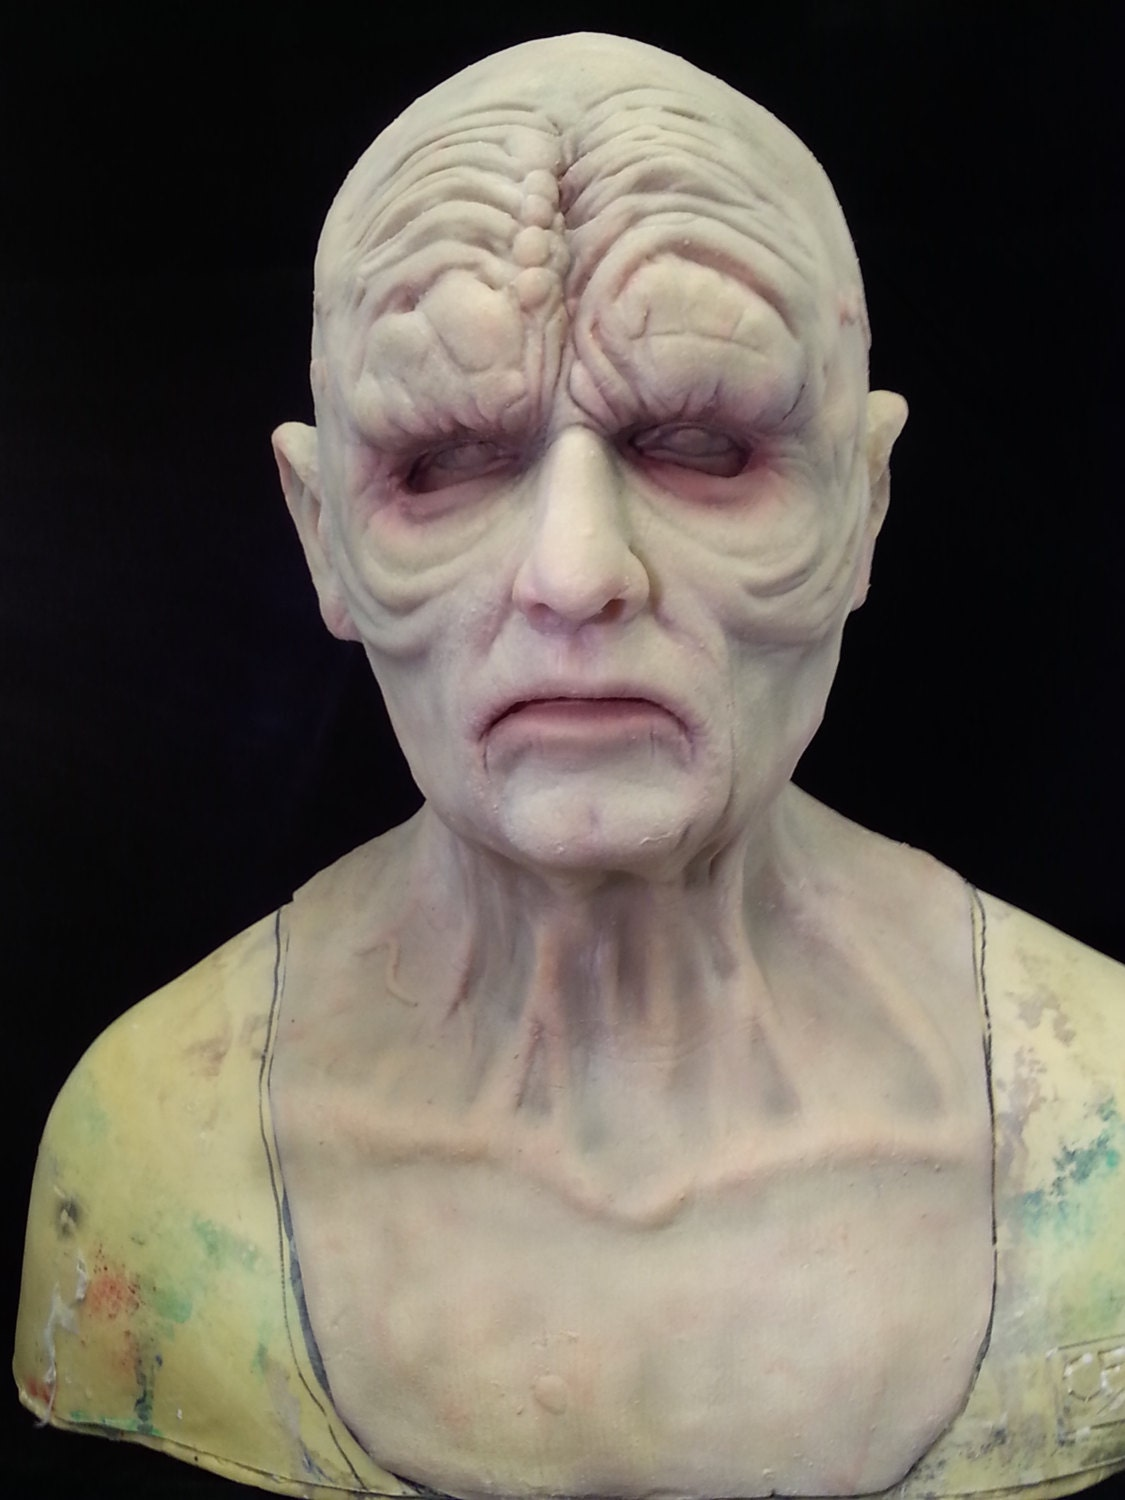 emperor palpatine inspired silicone mask by melissacoulter. Black Bedroom Furniture Sets. Home Design Ideas